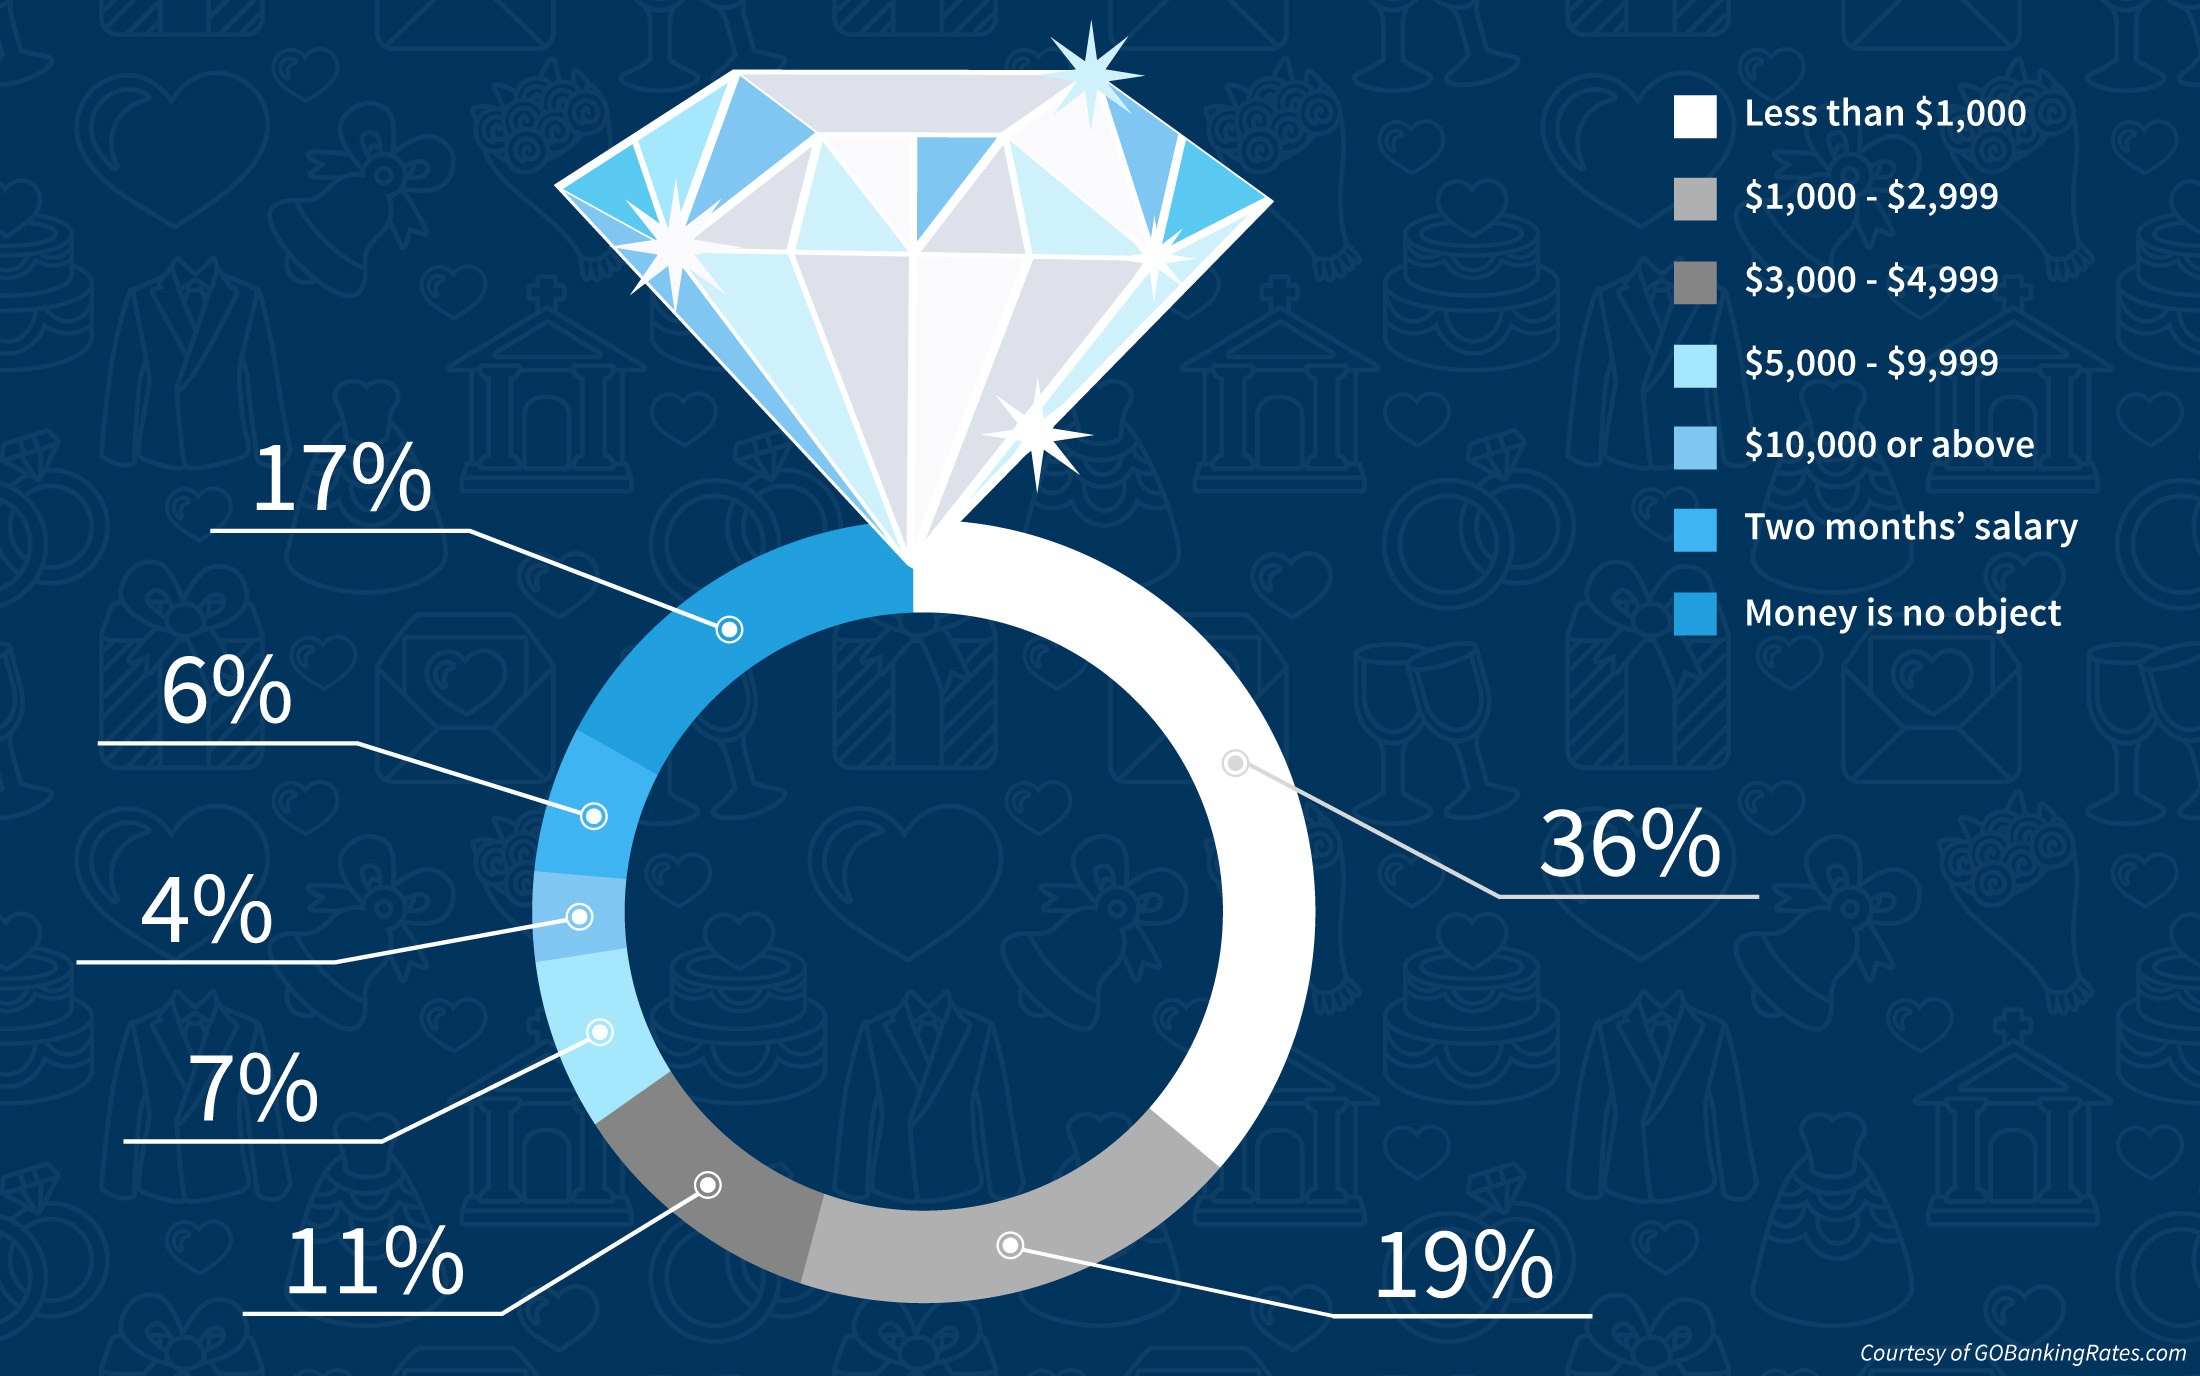 Here's what Americans will spend on engagement rings